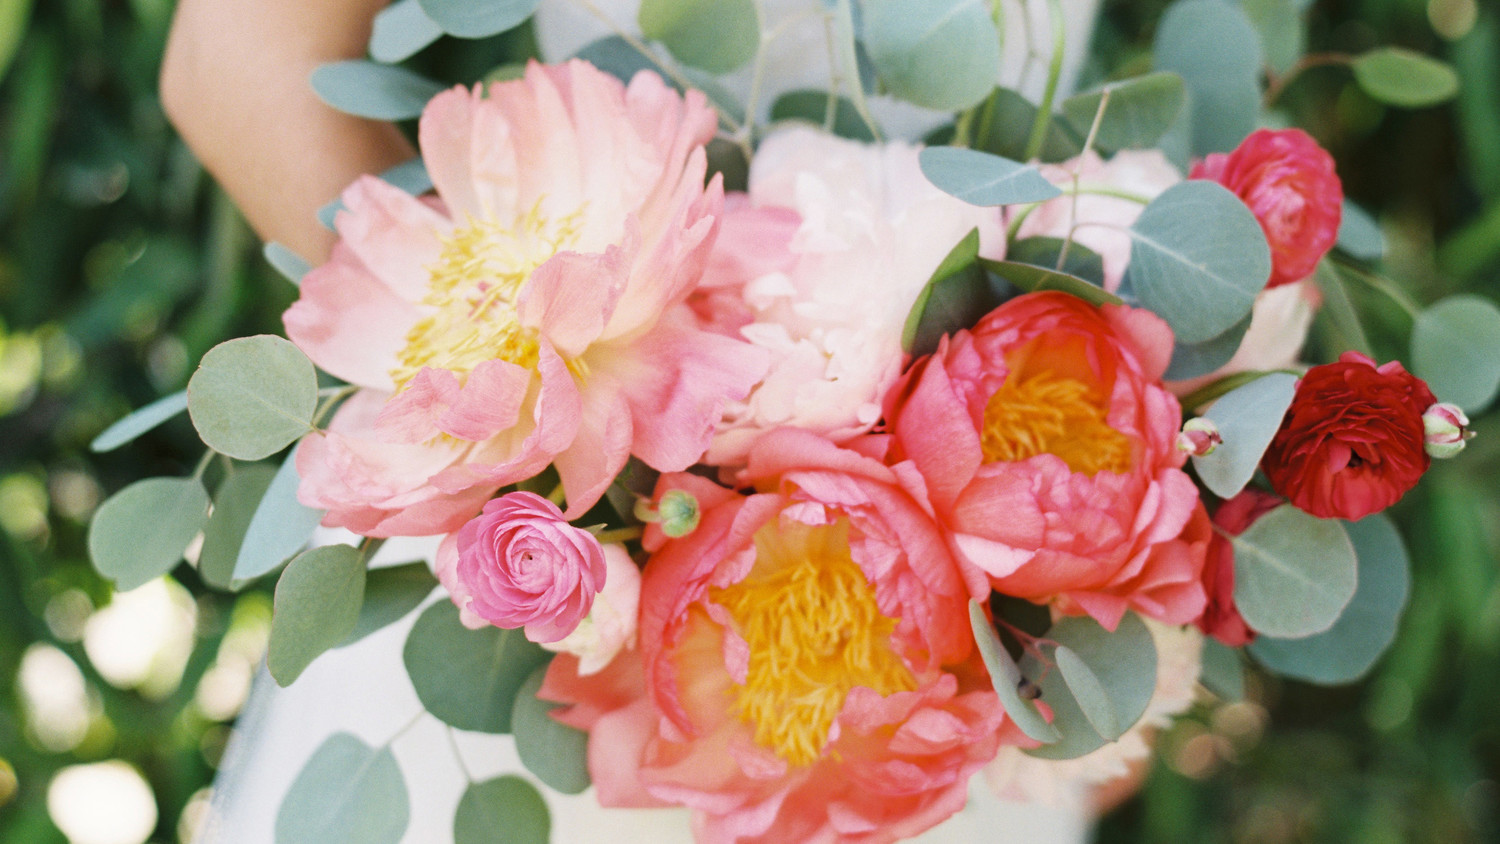 Two Florists Share Their Secrets for Getting Wedding Flowers You ...